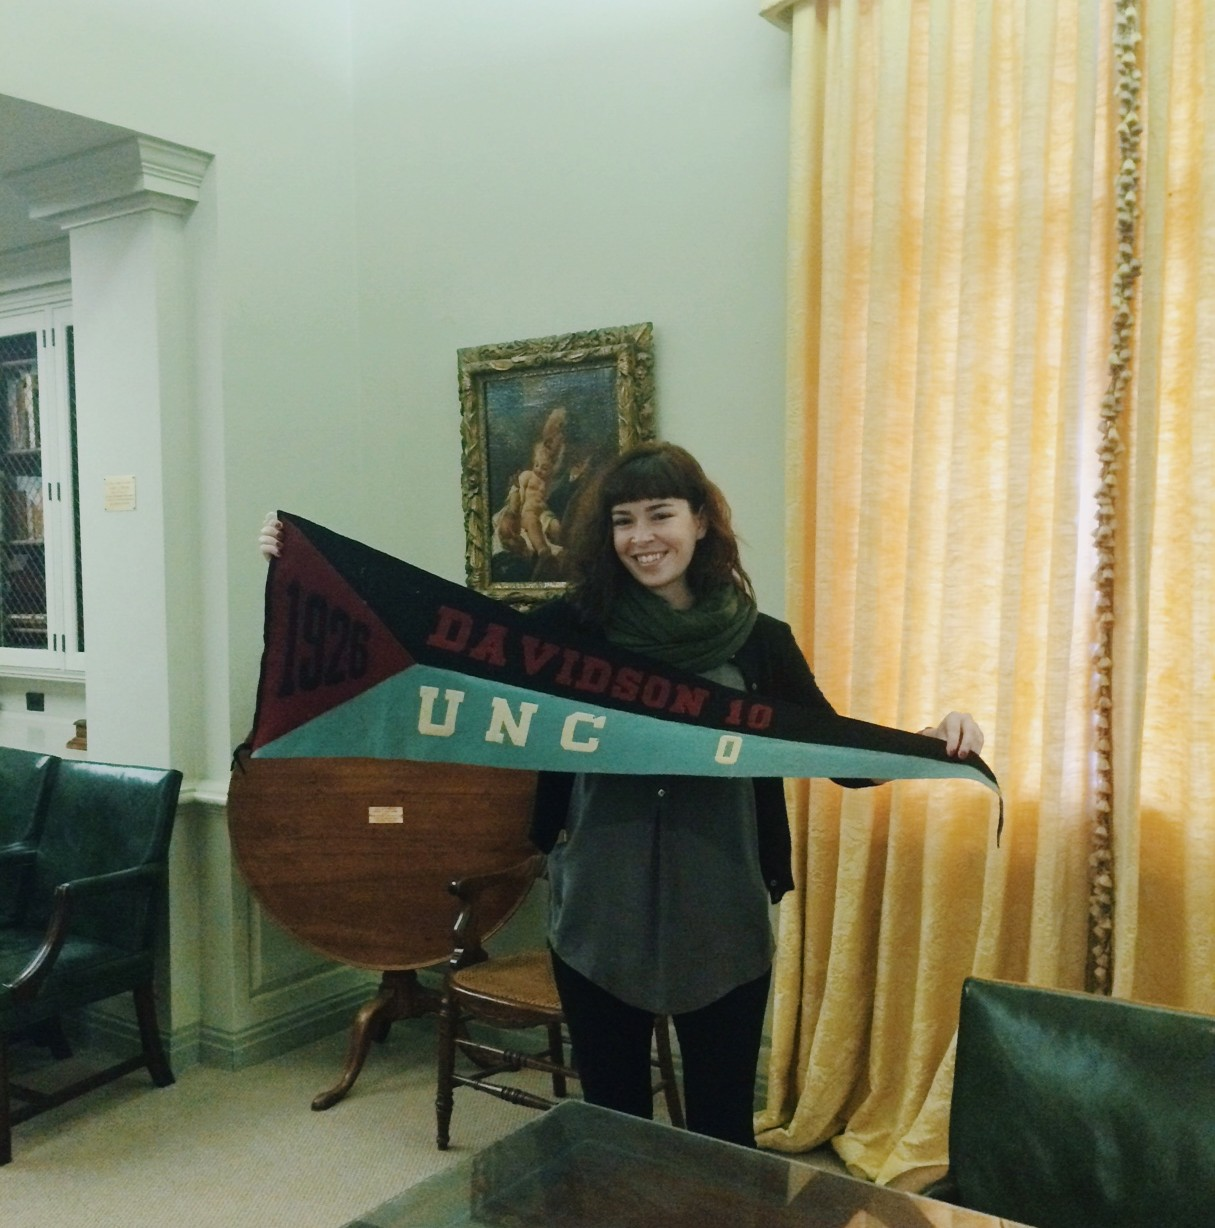 Posing with a pennant from that one time Davidson beat UNC in 1926.